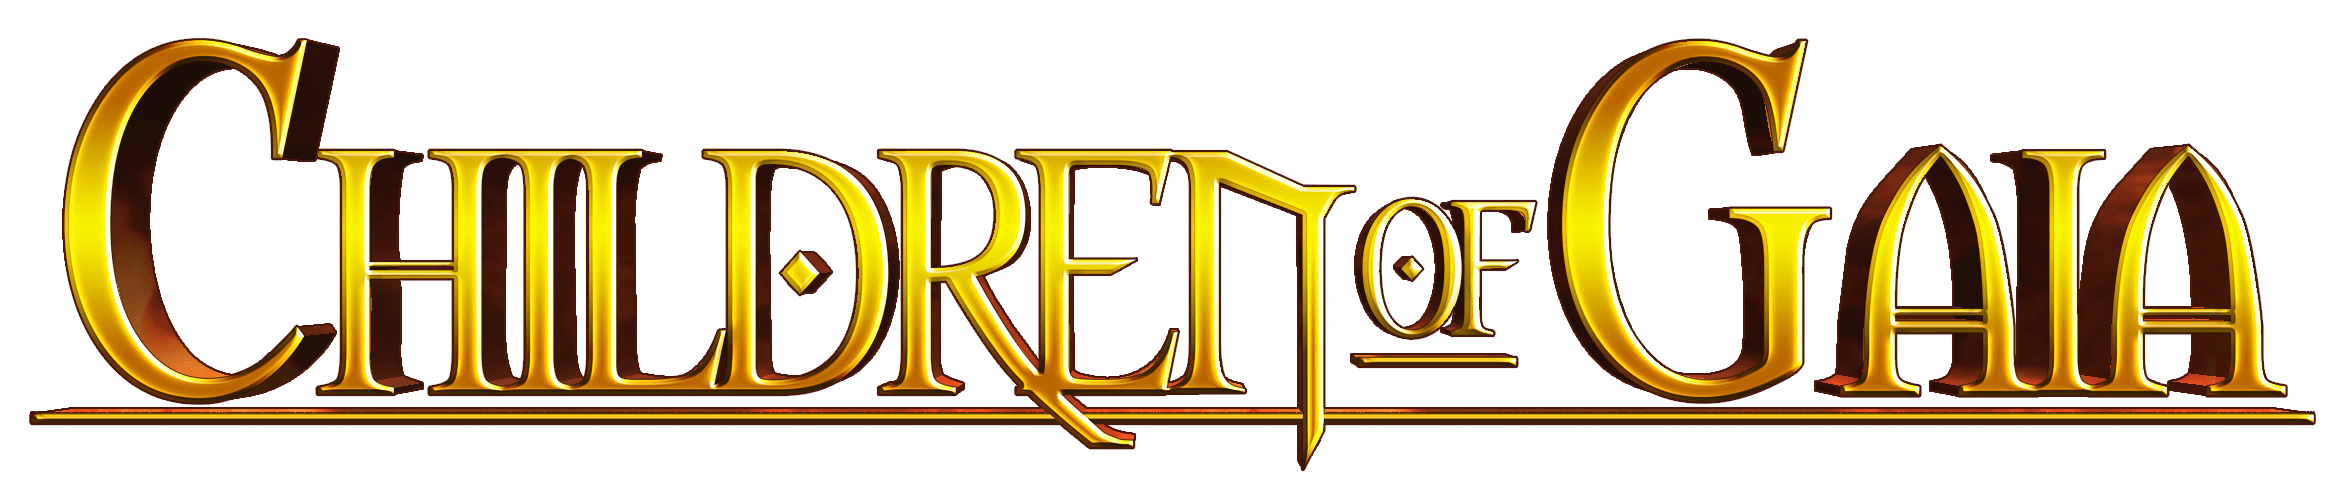 Children of Gaia's golden metallic logo reflecting fiery lighting